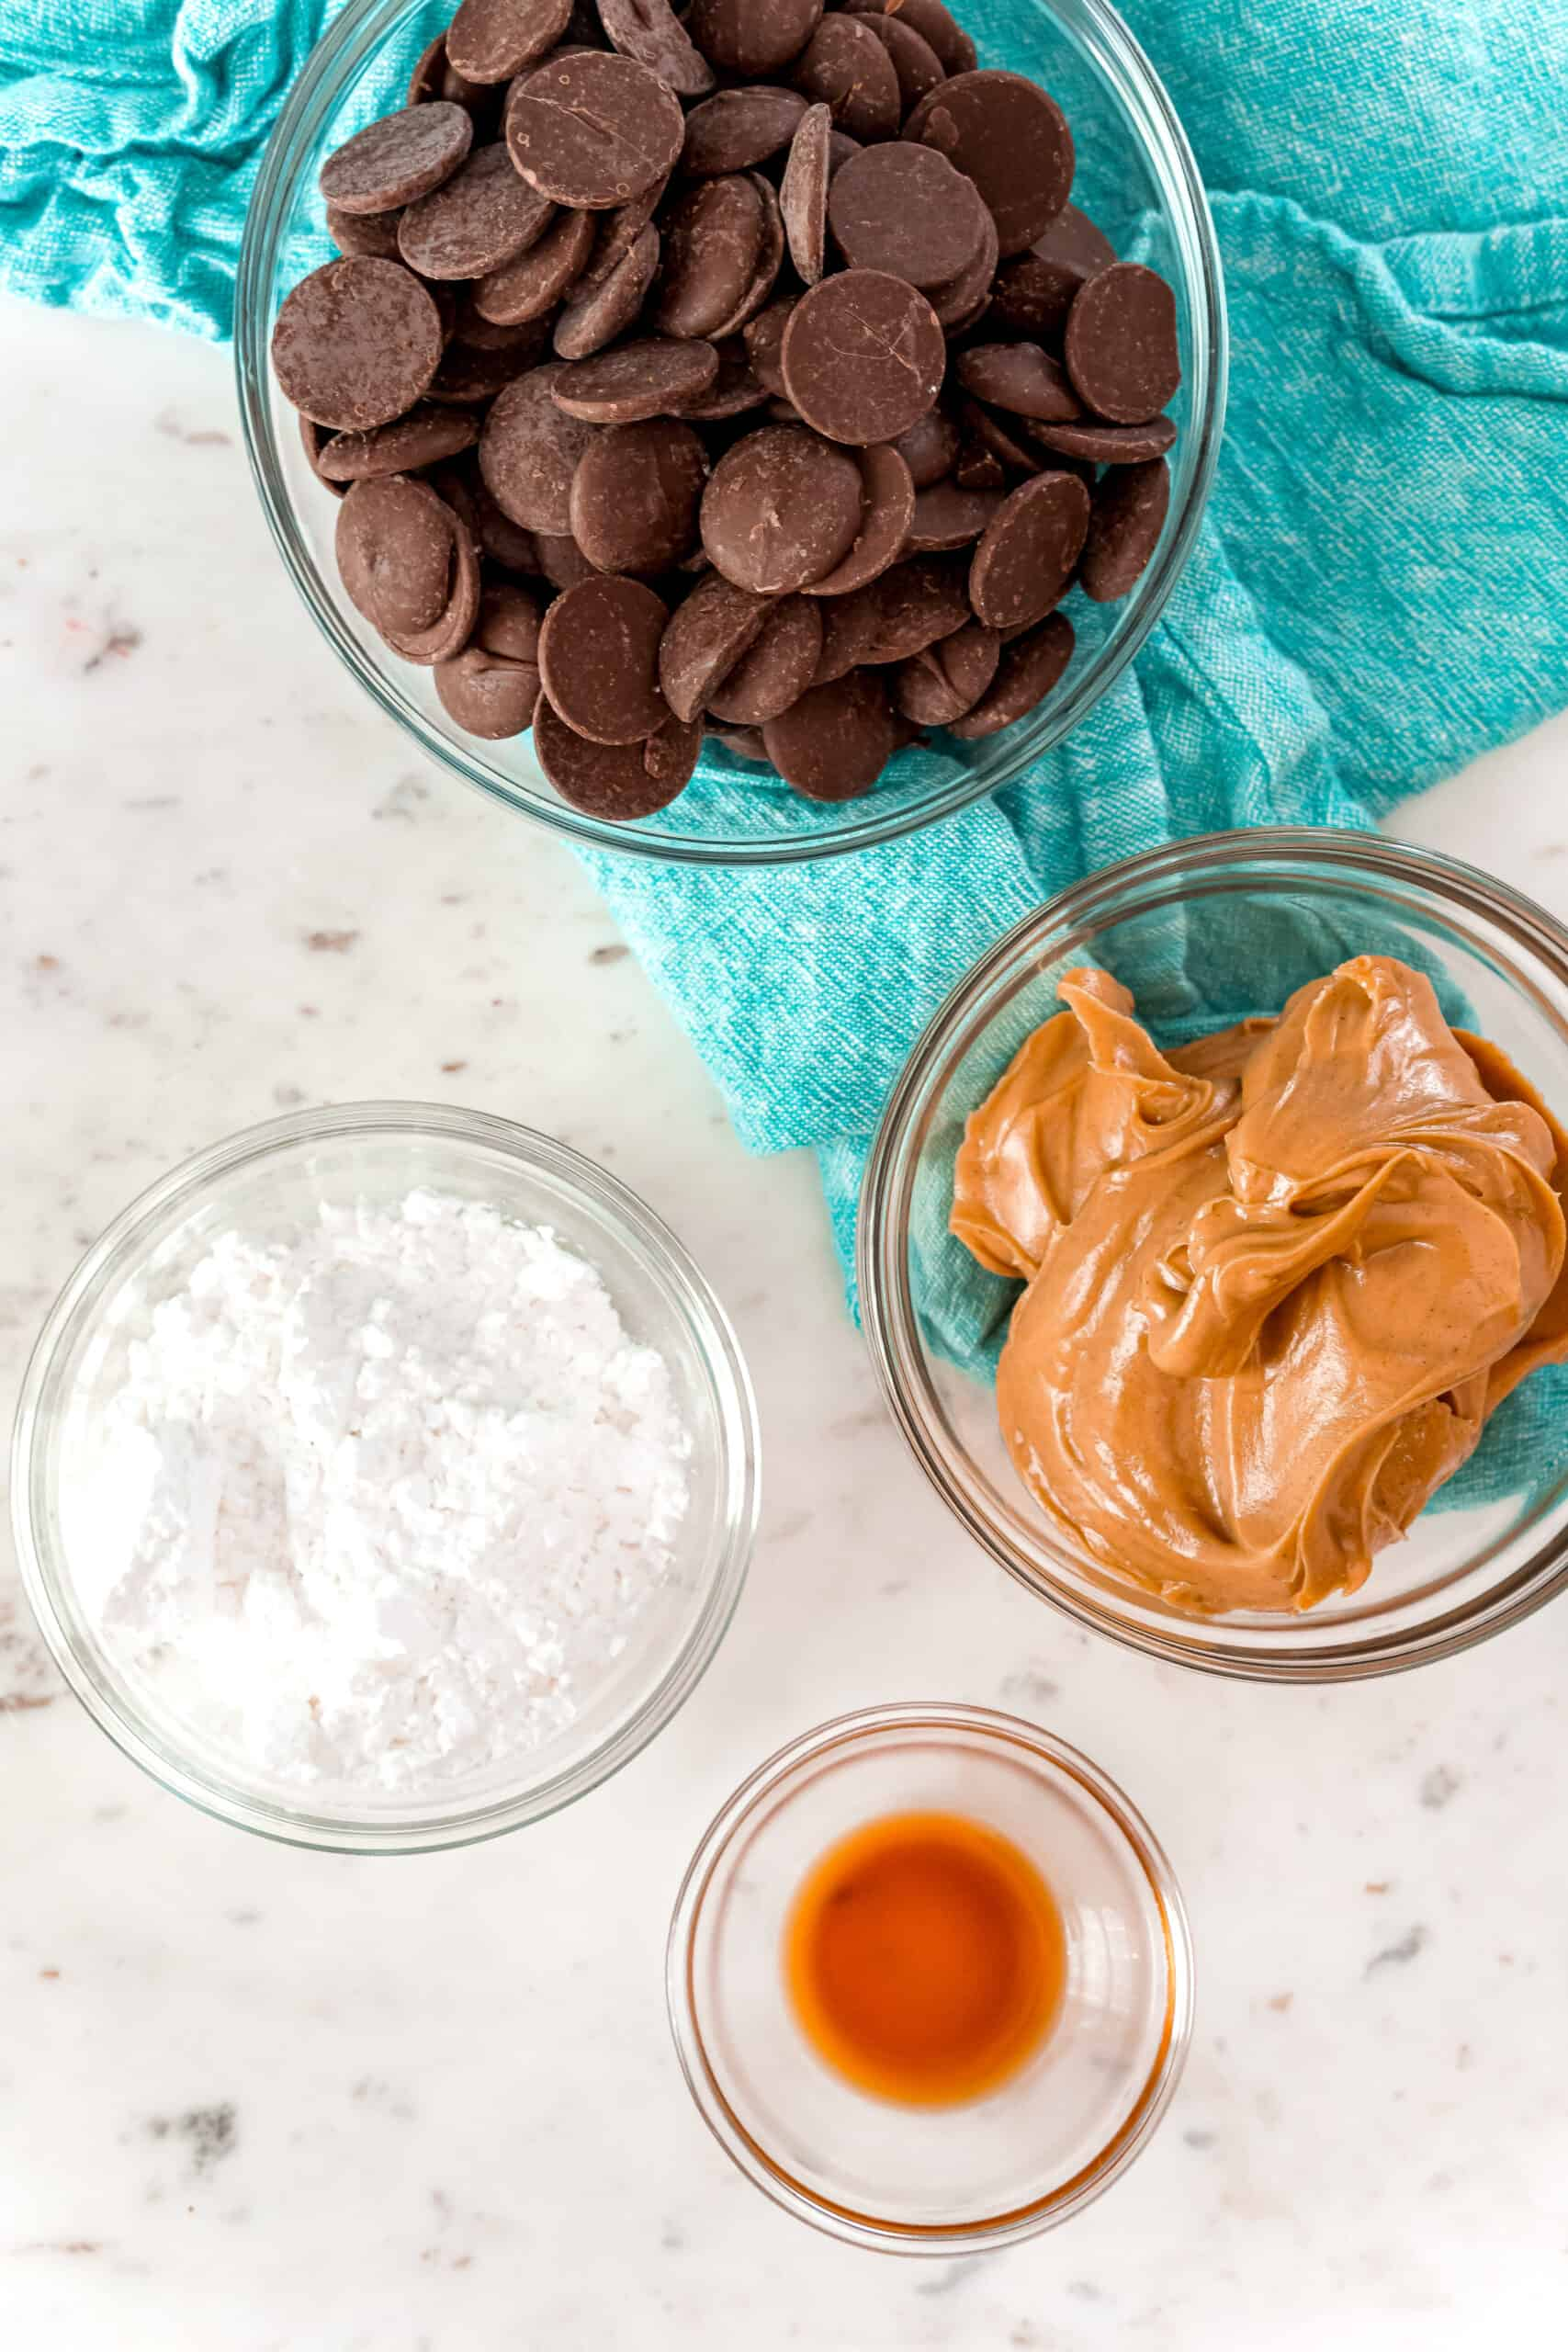 Four ingredients to make homemade peanut butter cups including chocolate, sugar, vanilla, and peanut butter.